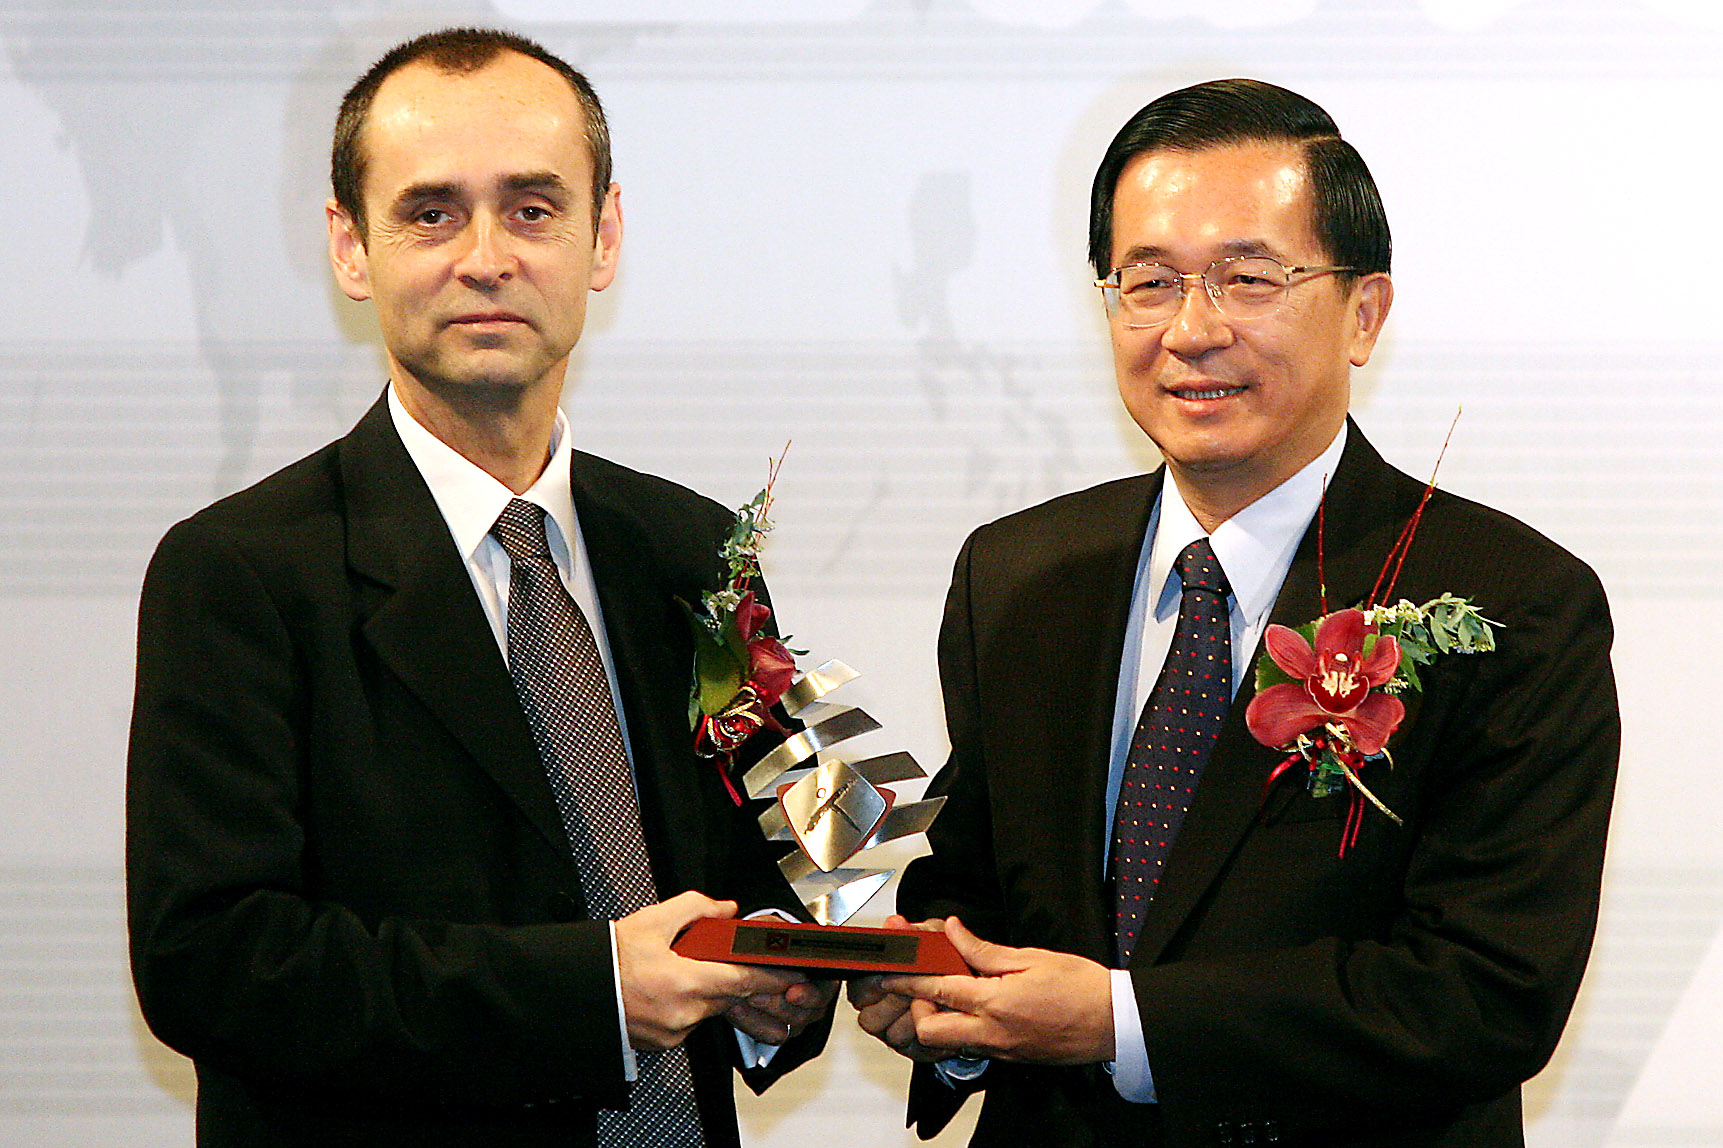 President Chen Shui-bian, right, gives the 2006 Asia Democracy & Human Rights Award to Reporters sans Frontieres Secretary General Robert Menard, who ...